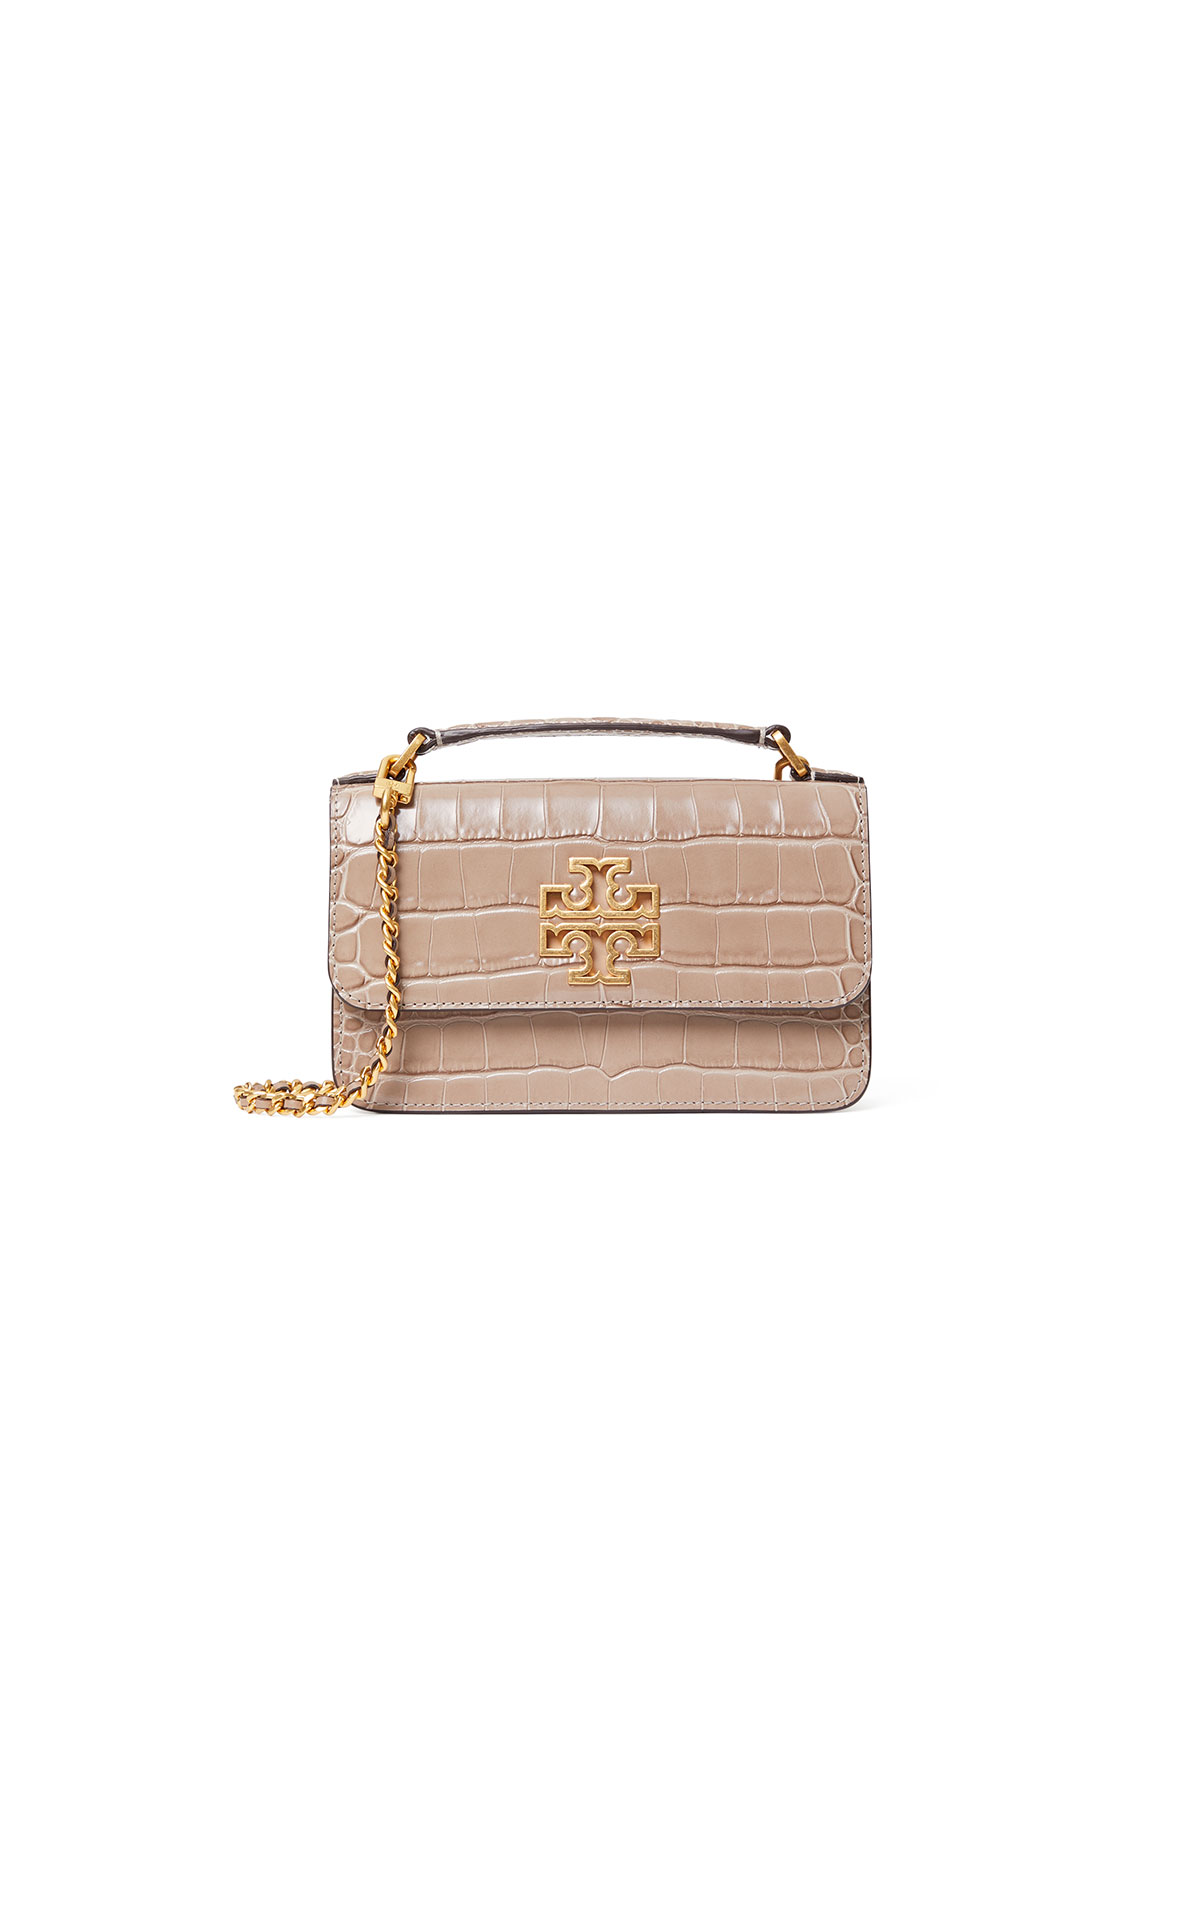 Tory Burch Britten croc mini top handle bag in Elk at The Bicester Village Shopping Collection